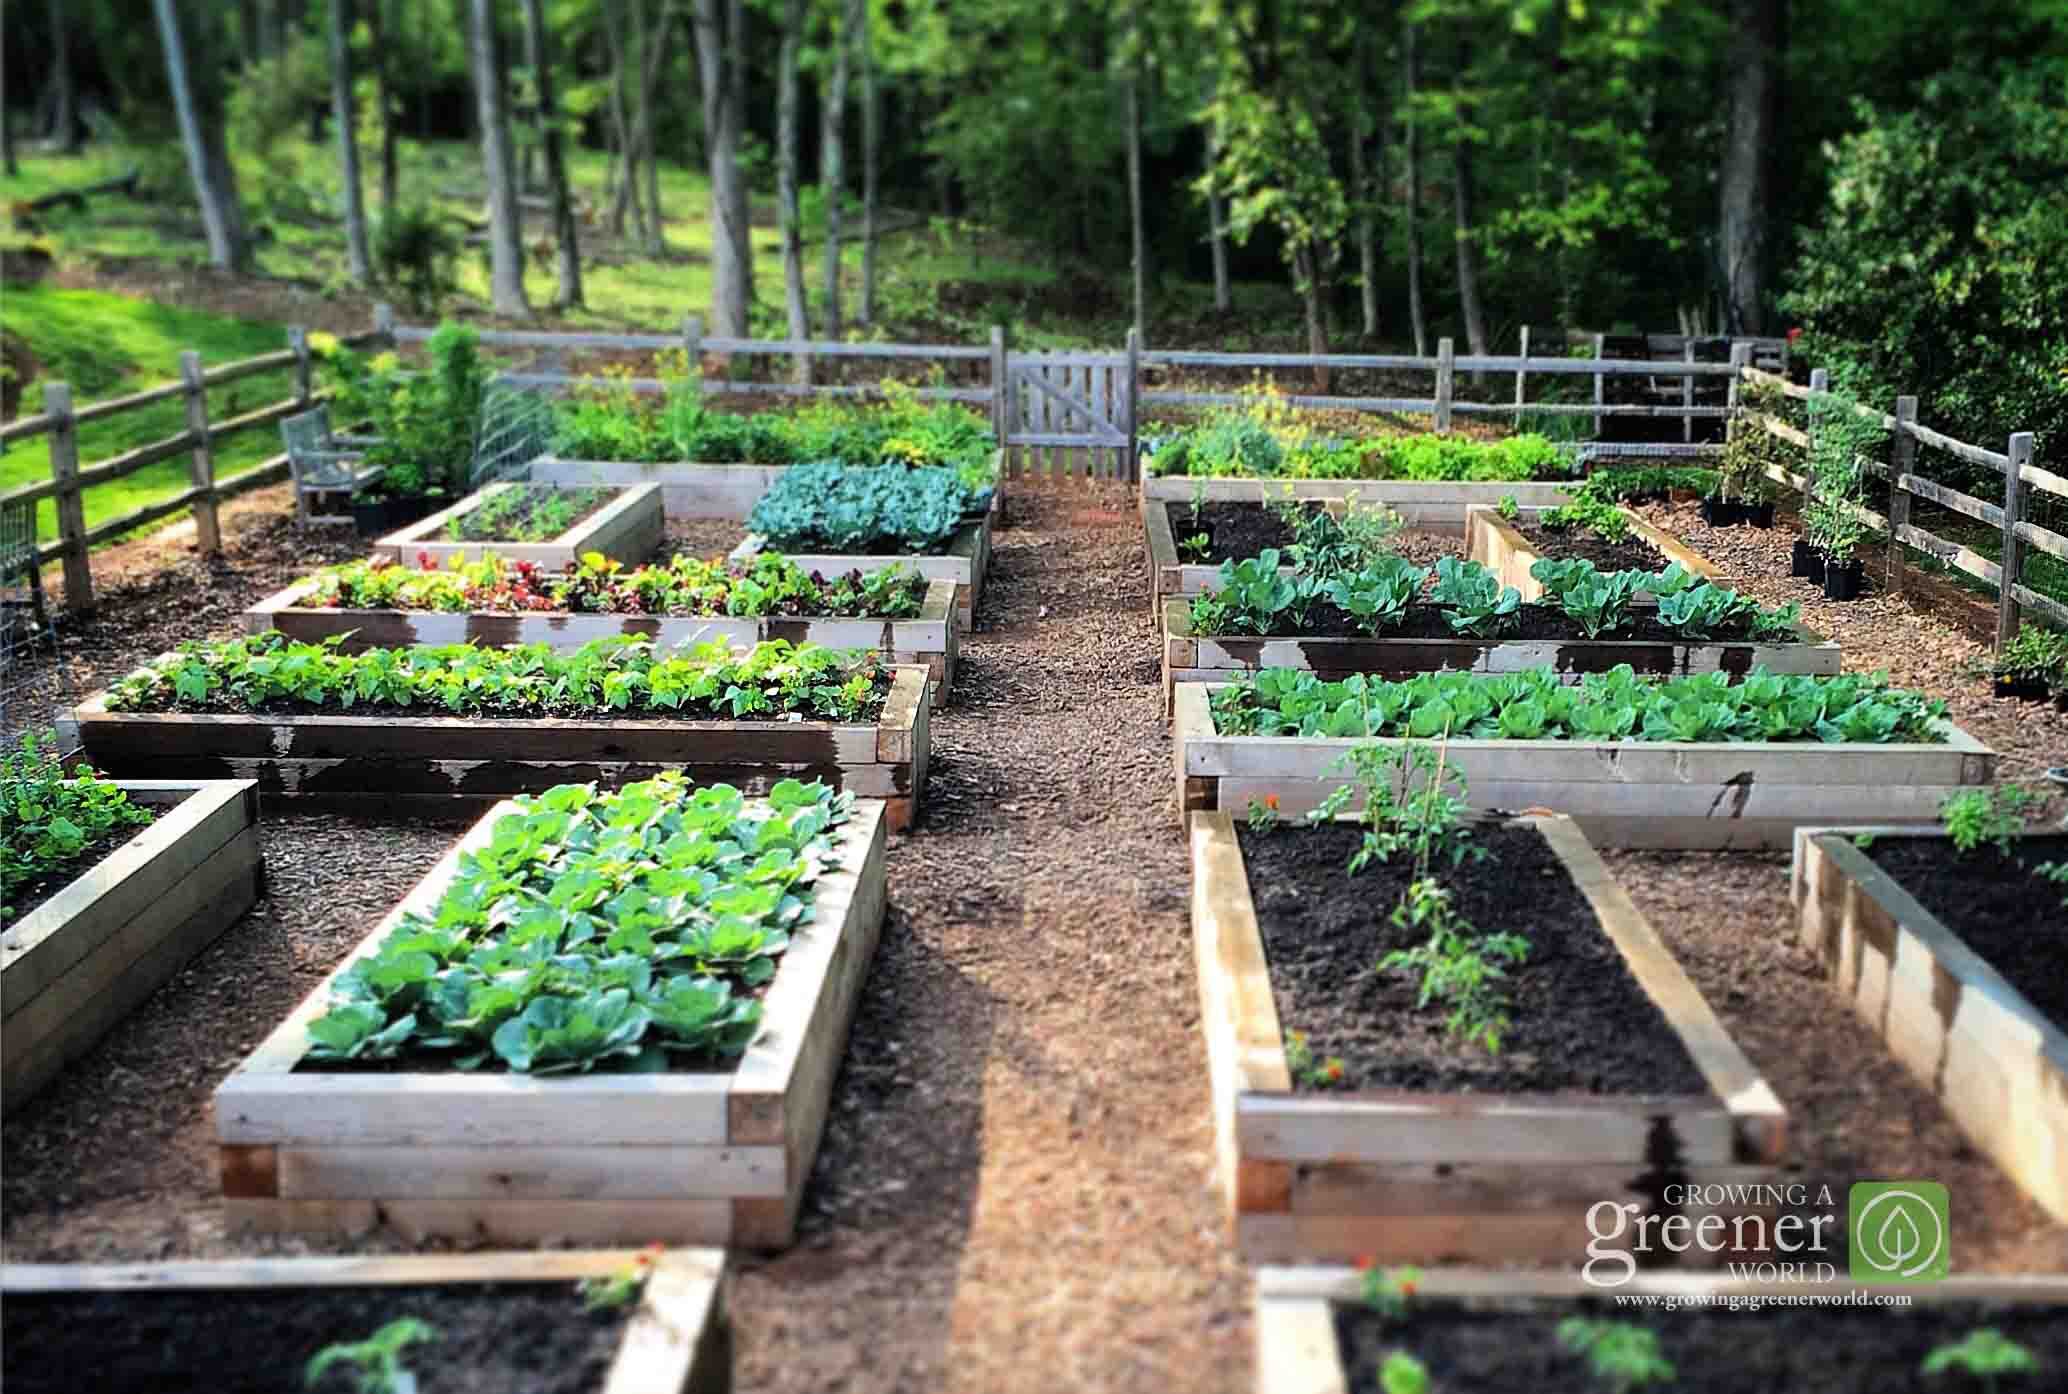 Three Key Benefits of Gardening in Raised Beds - Growing A ... on greenhouse design plans, raised vegetable garden design ideas, cedar raised garden bed plans, privacy fence design plans, best raised garden plans, diy raised garden beds plans, raised garden layout, raised bed garden box design, marshmallow catapult design plans, cheap raised garden bed plans, raised garden planting plans, corner pergola design plans, small garden design plans, vegetable garden design plans, raised bed gardening designs, exhibition booth design plans, attached pergola design plans, easy raised garden plans, luxury home design plans,